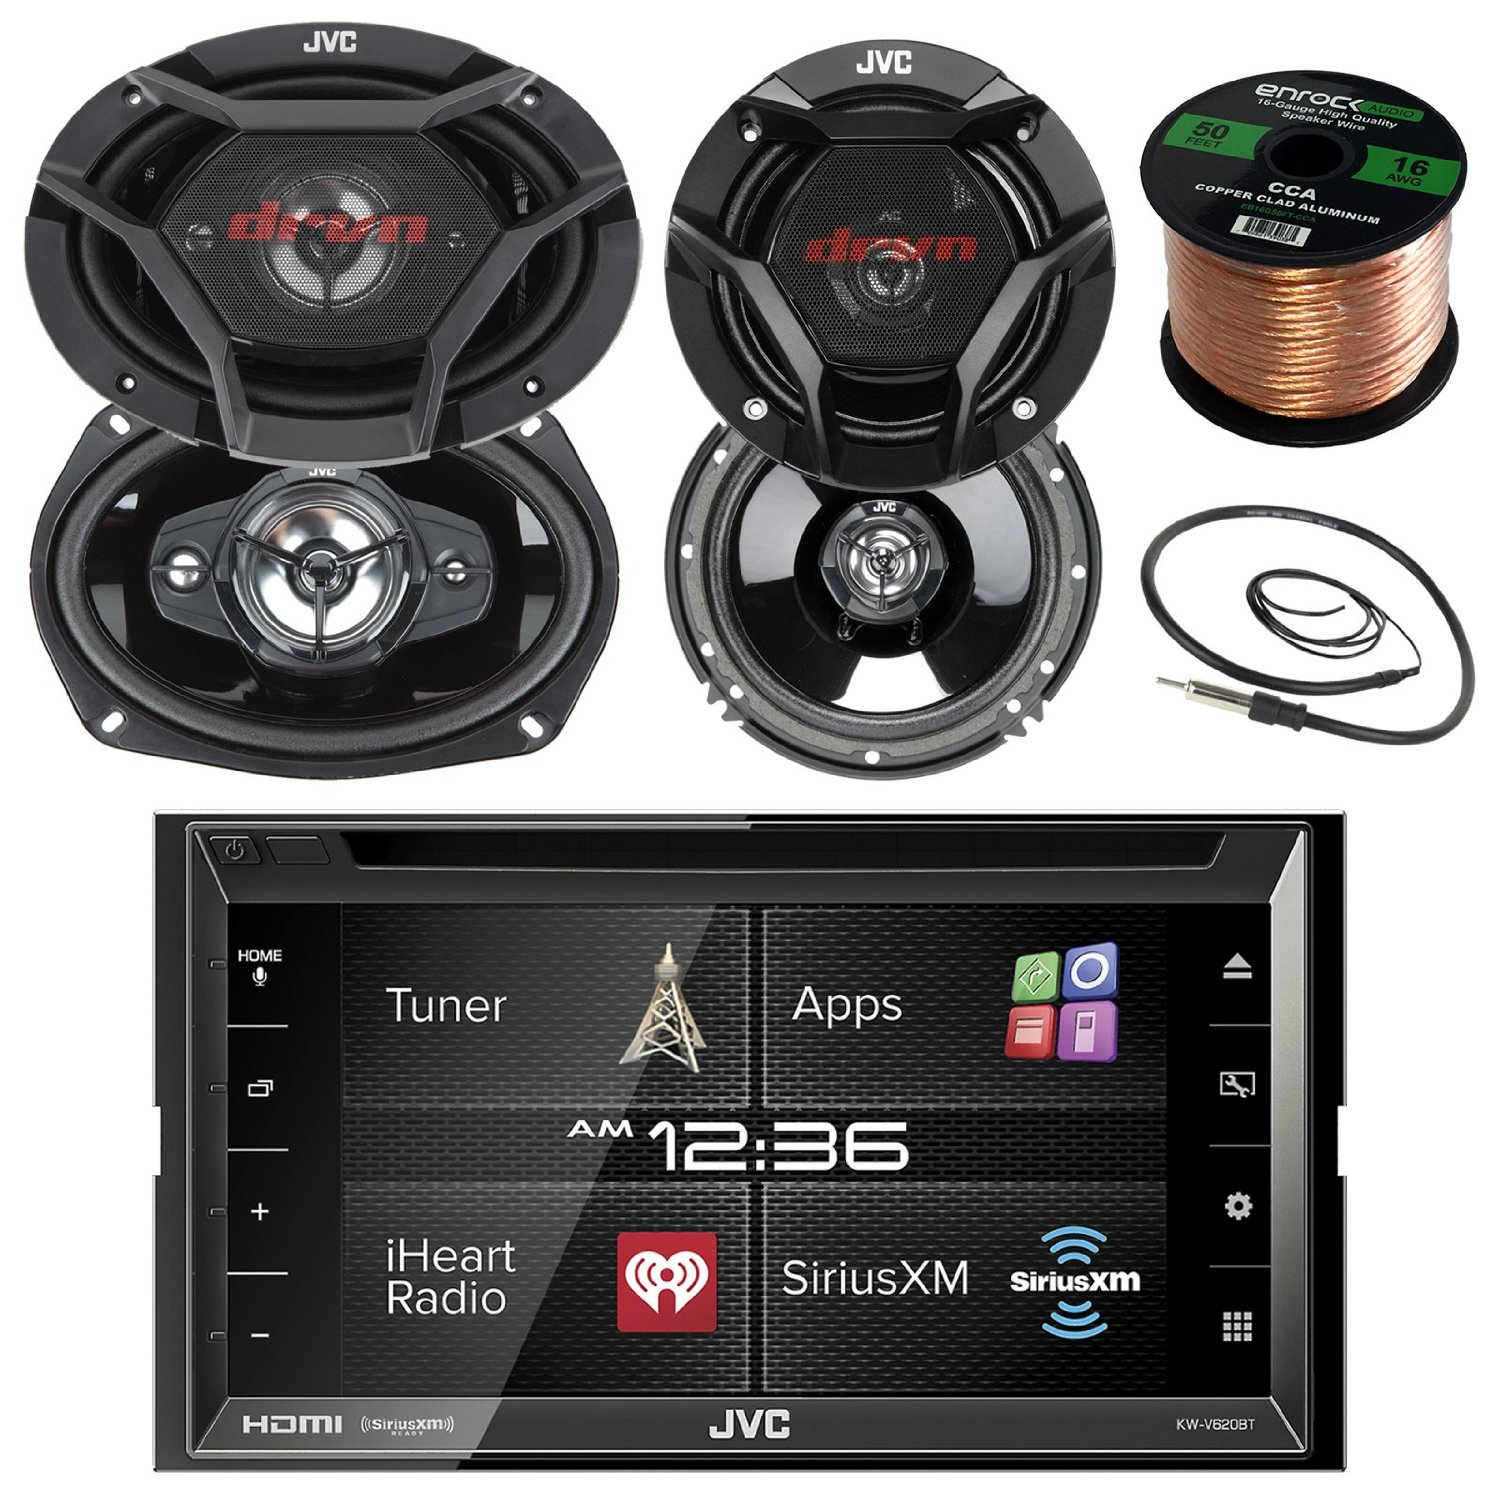 """JVC KWV620BT 6.8"""" Touch Screen Car CD/DVD Bluetooth Receiver Bundle Combo With 2x Dual 6.5"""" 2-Way And 2x 6x9"""" Inch 4-Way Audio Coaxial Speakers + Enrock 22"""" AM/FM Antenna + 50 Ft 16g Speaker Wire"""